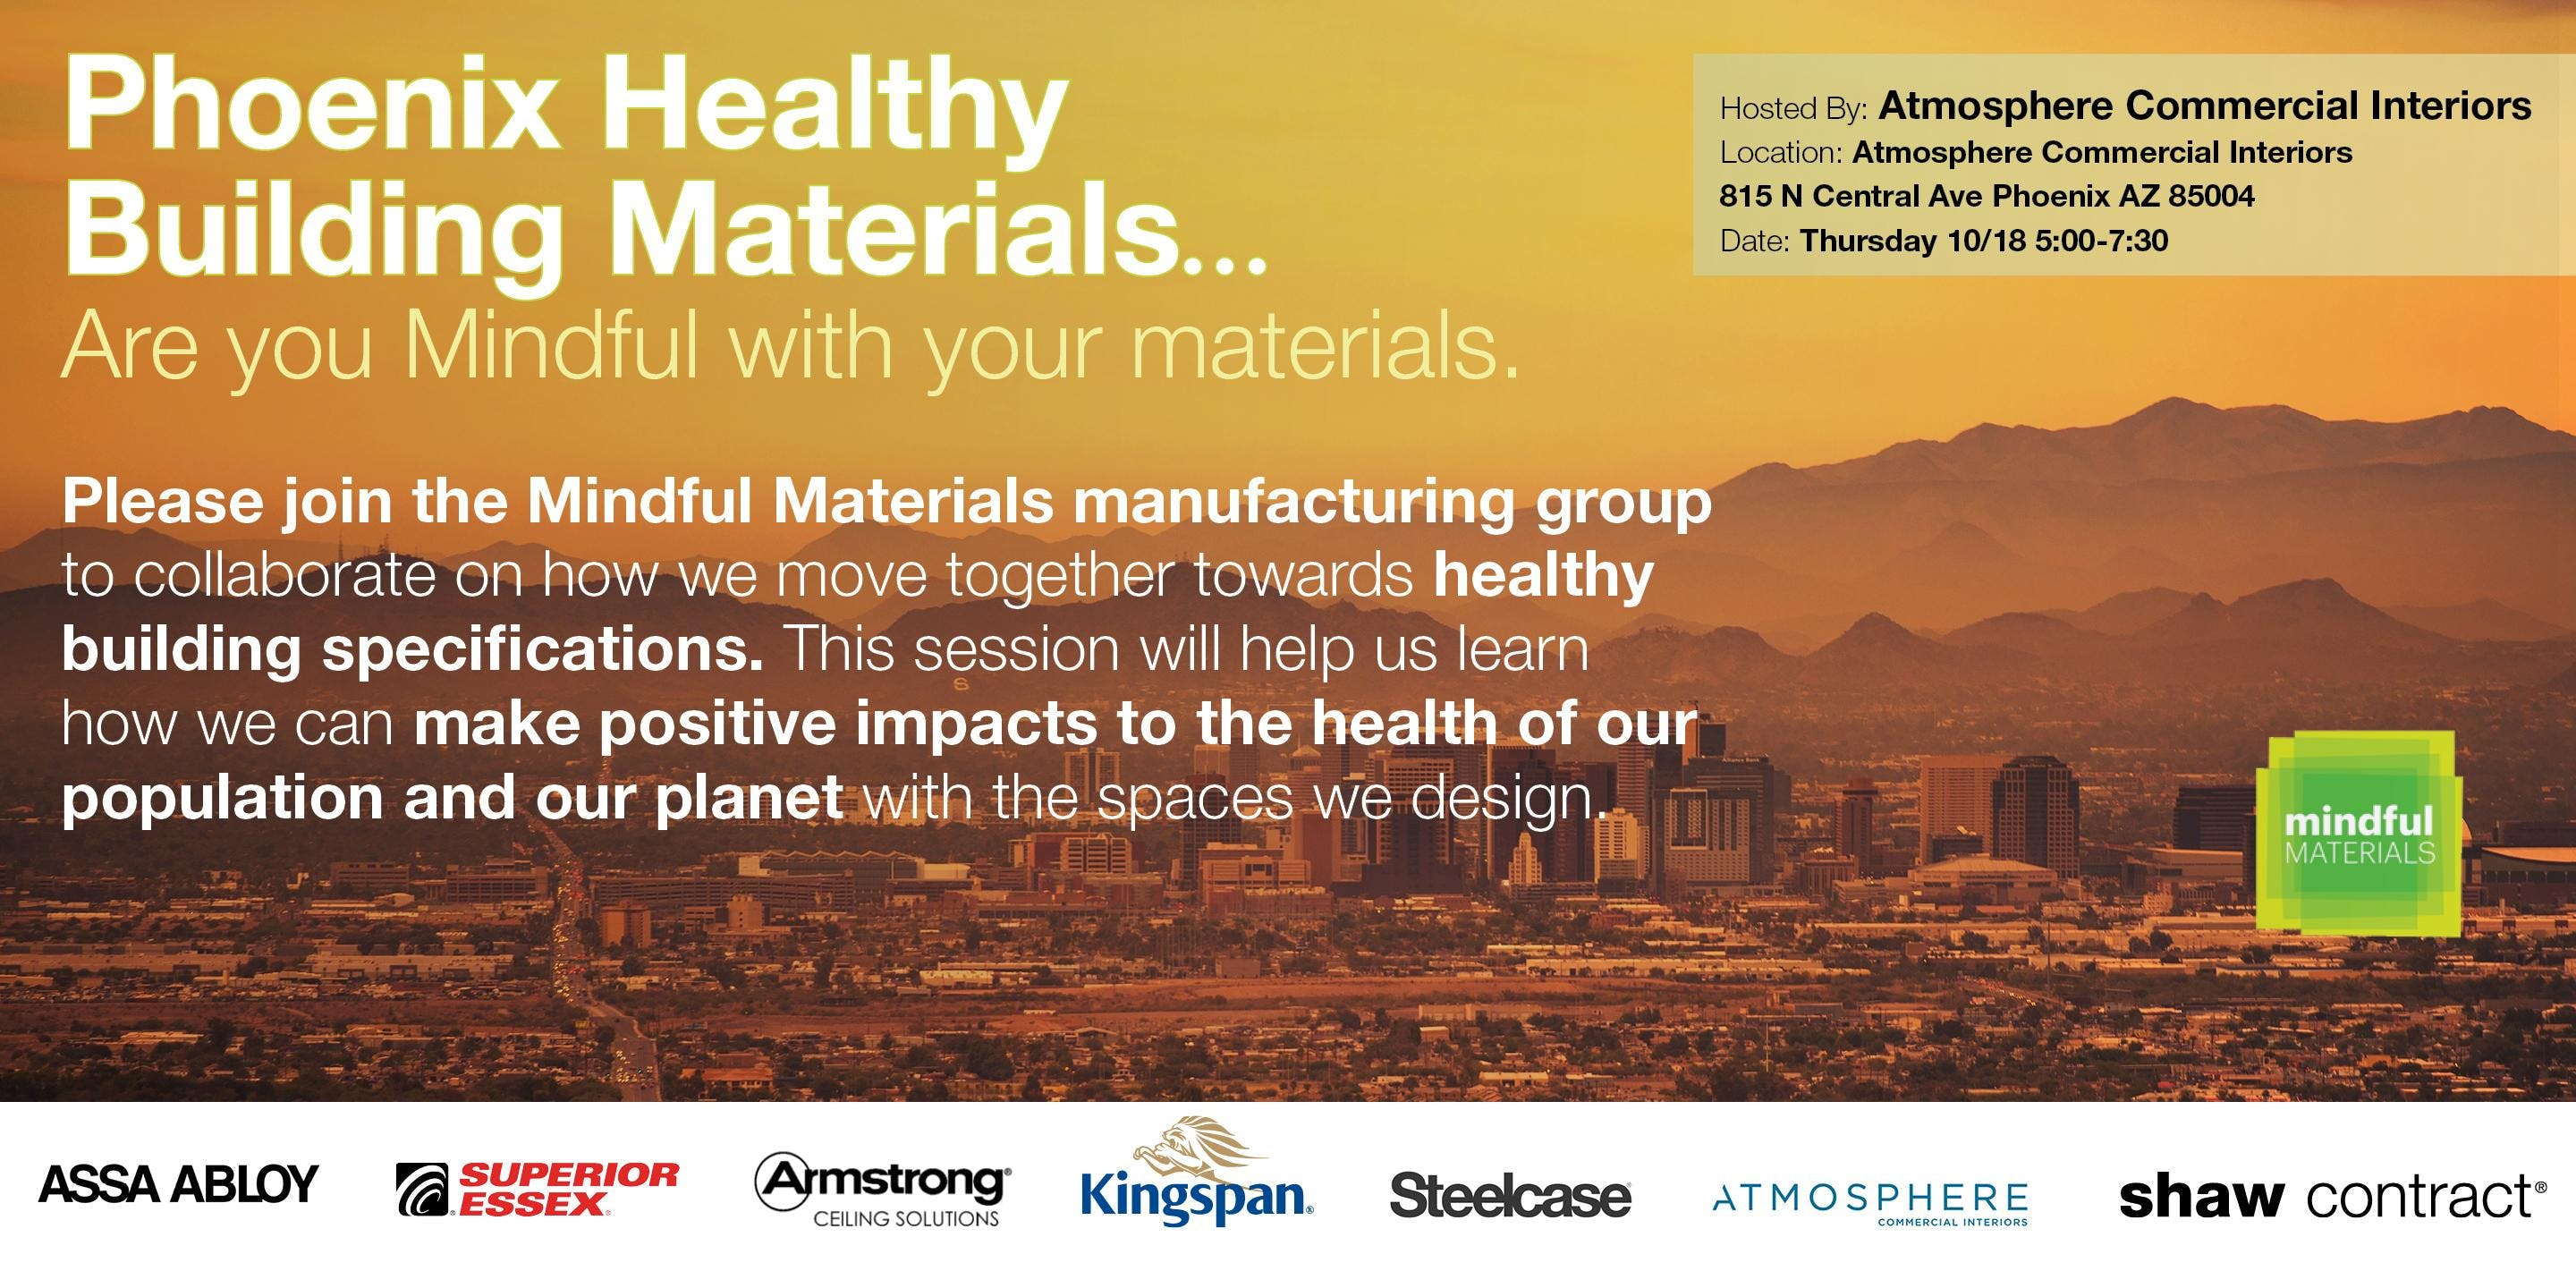 Phoenix Healthy Building Materials...Are you Mindful with your materials?